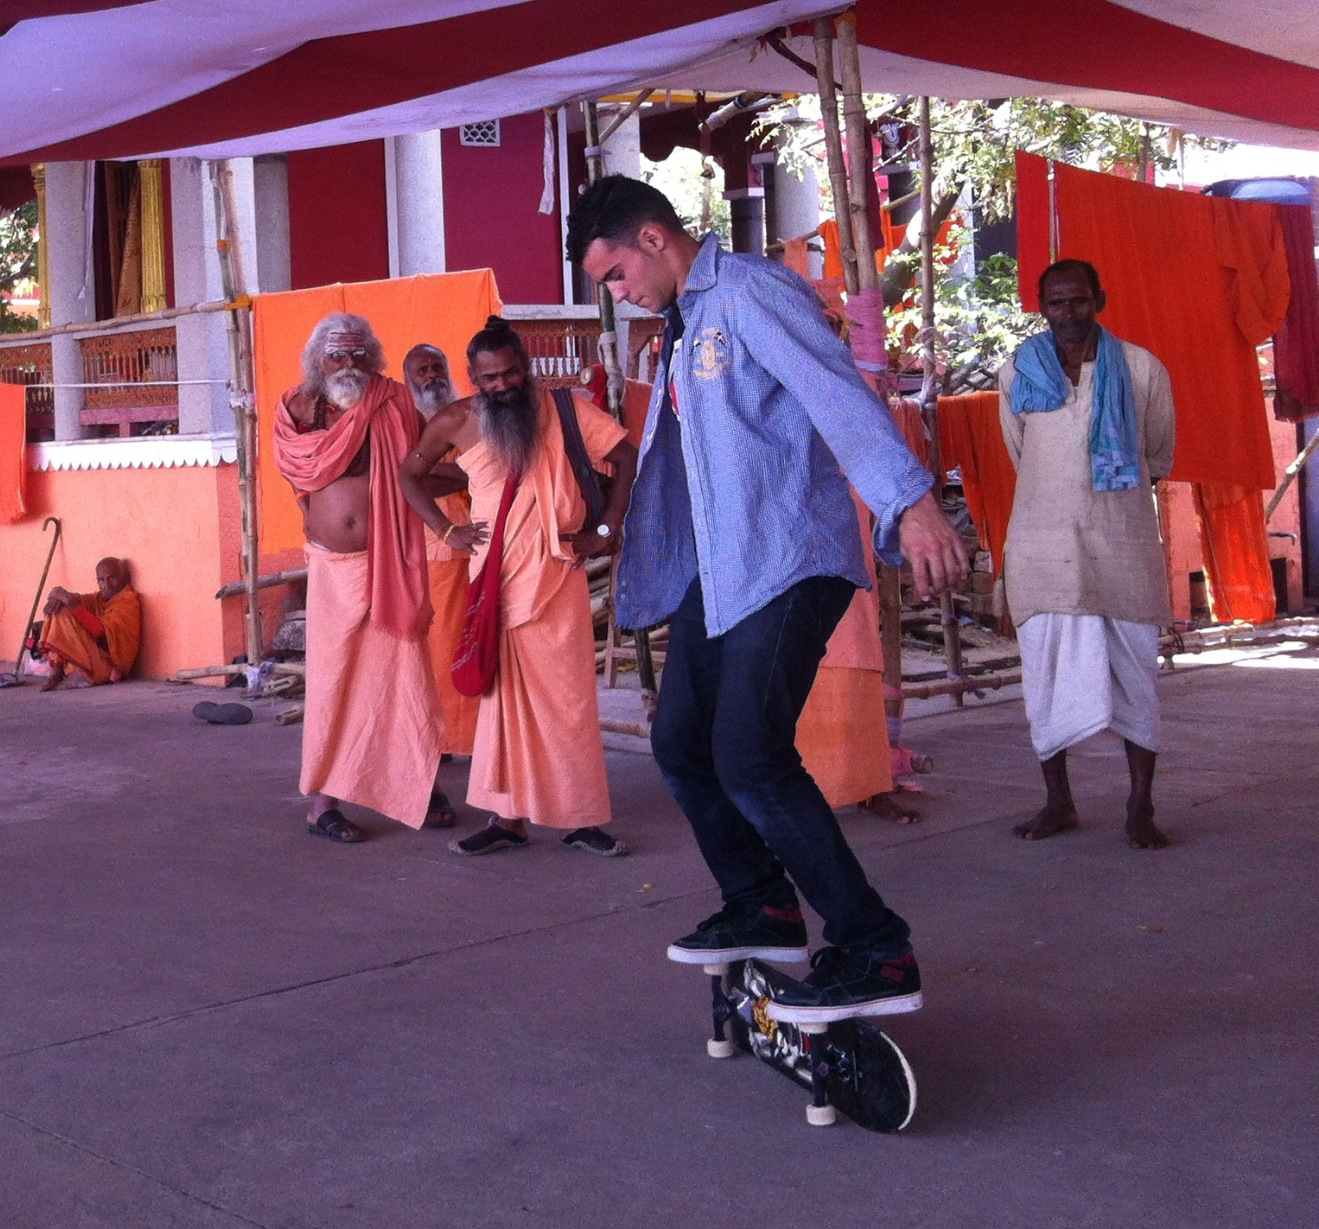 Kilian Martin and his journey through India.